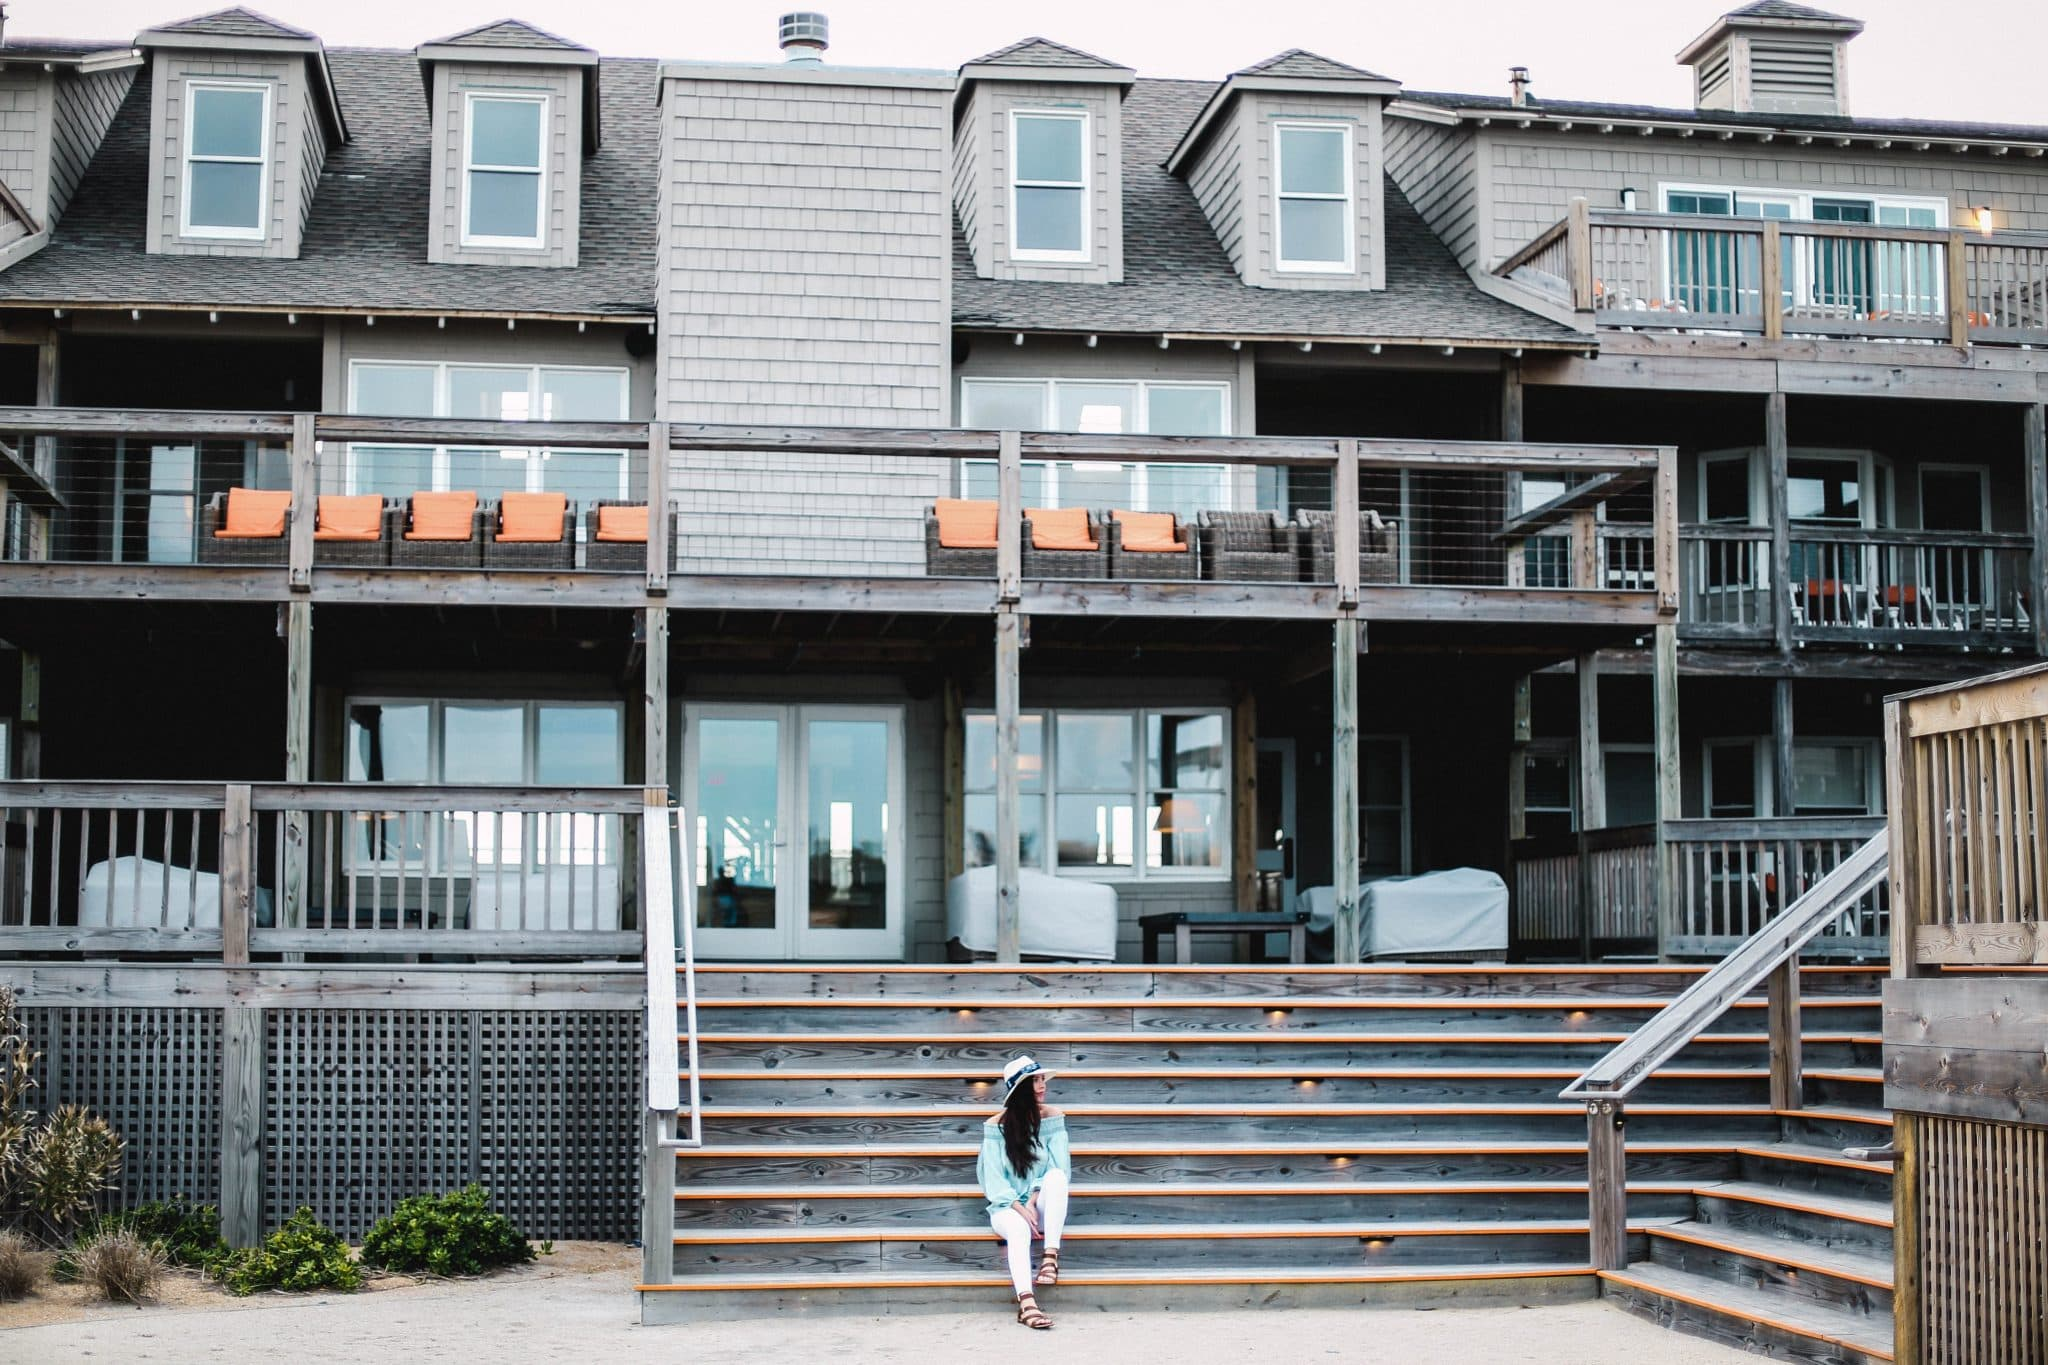 sanderling resort review, hotel blogger north carolina, pretty in the pines